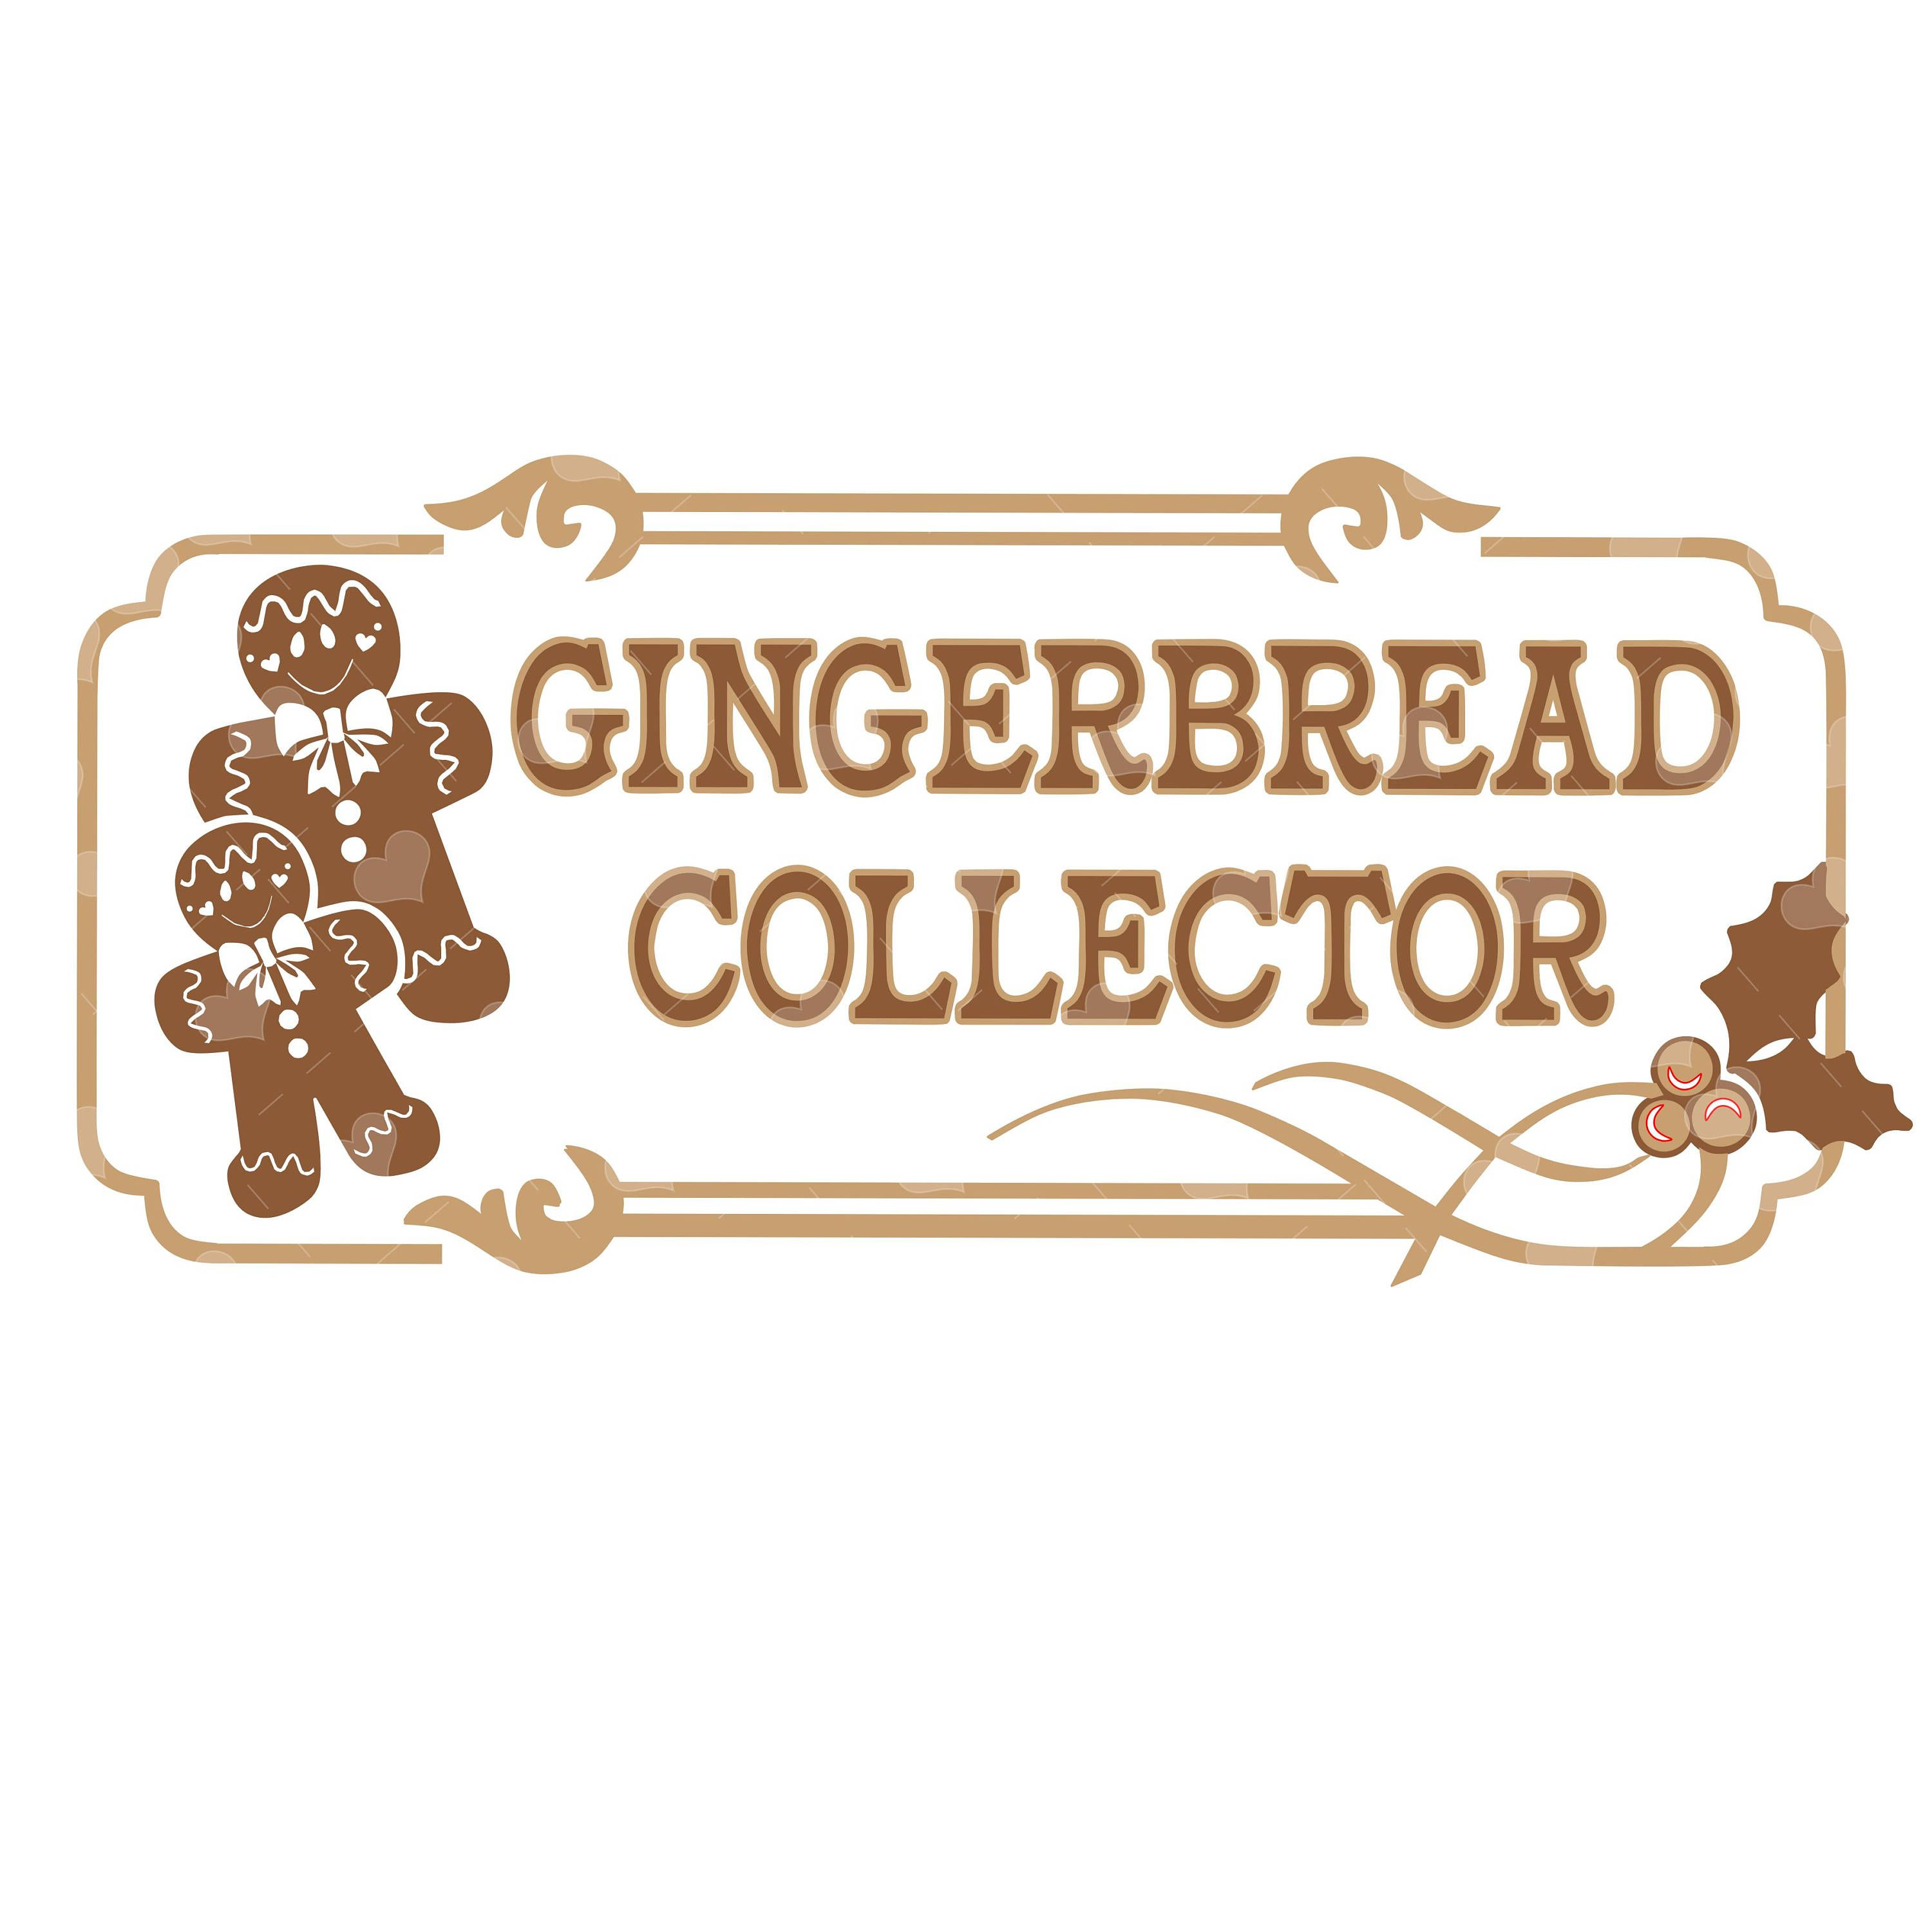 Gingerbread Collector sign SVG by AverellaDesigns on Etsy